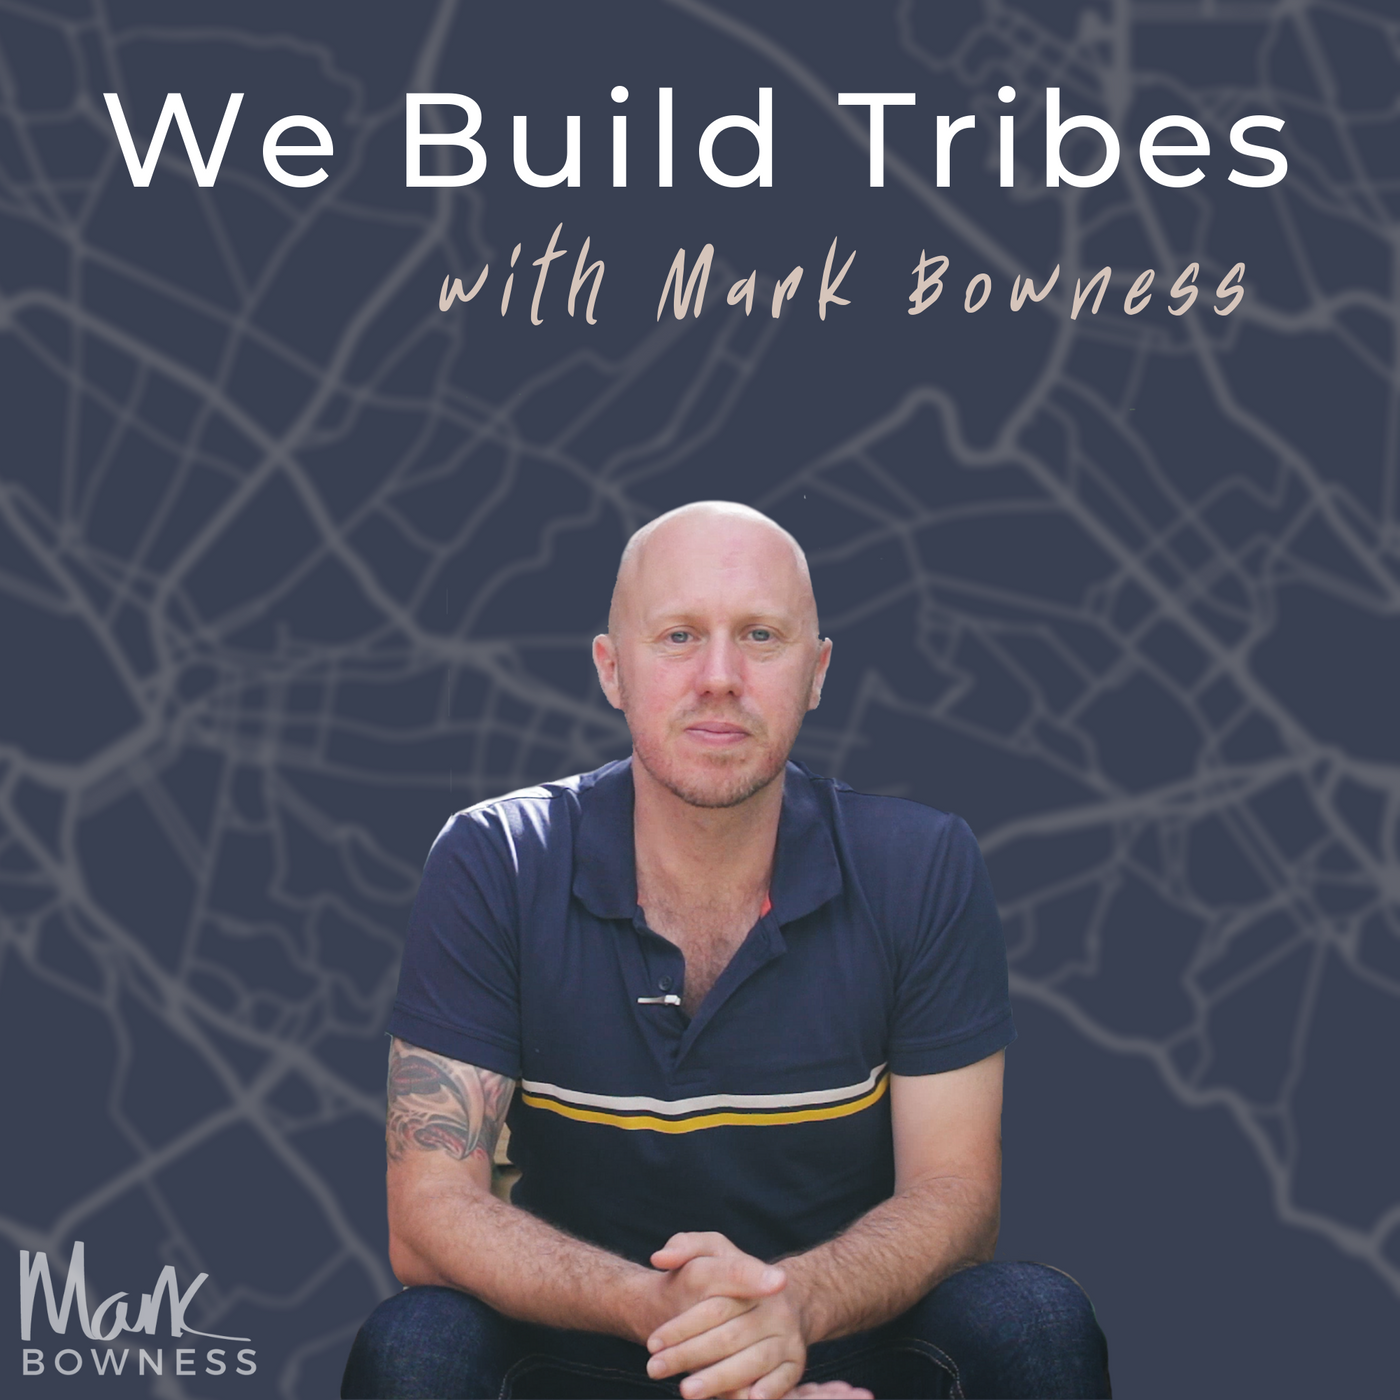 We Build Tribes With Mark Bowness podcast show image